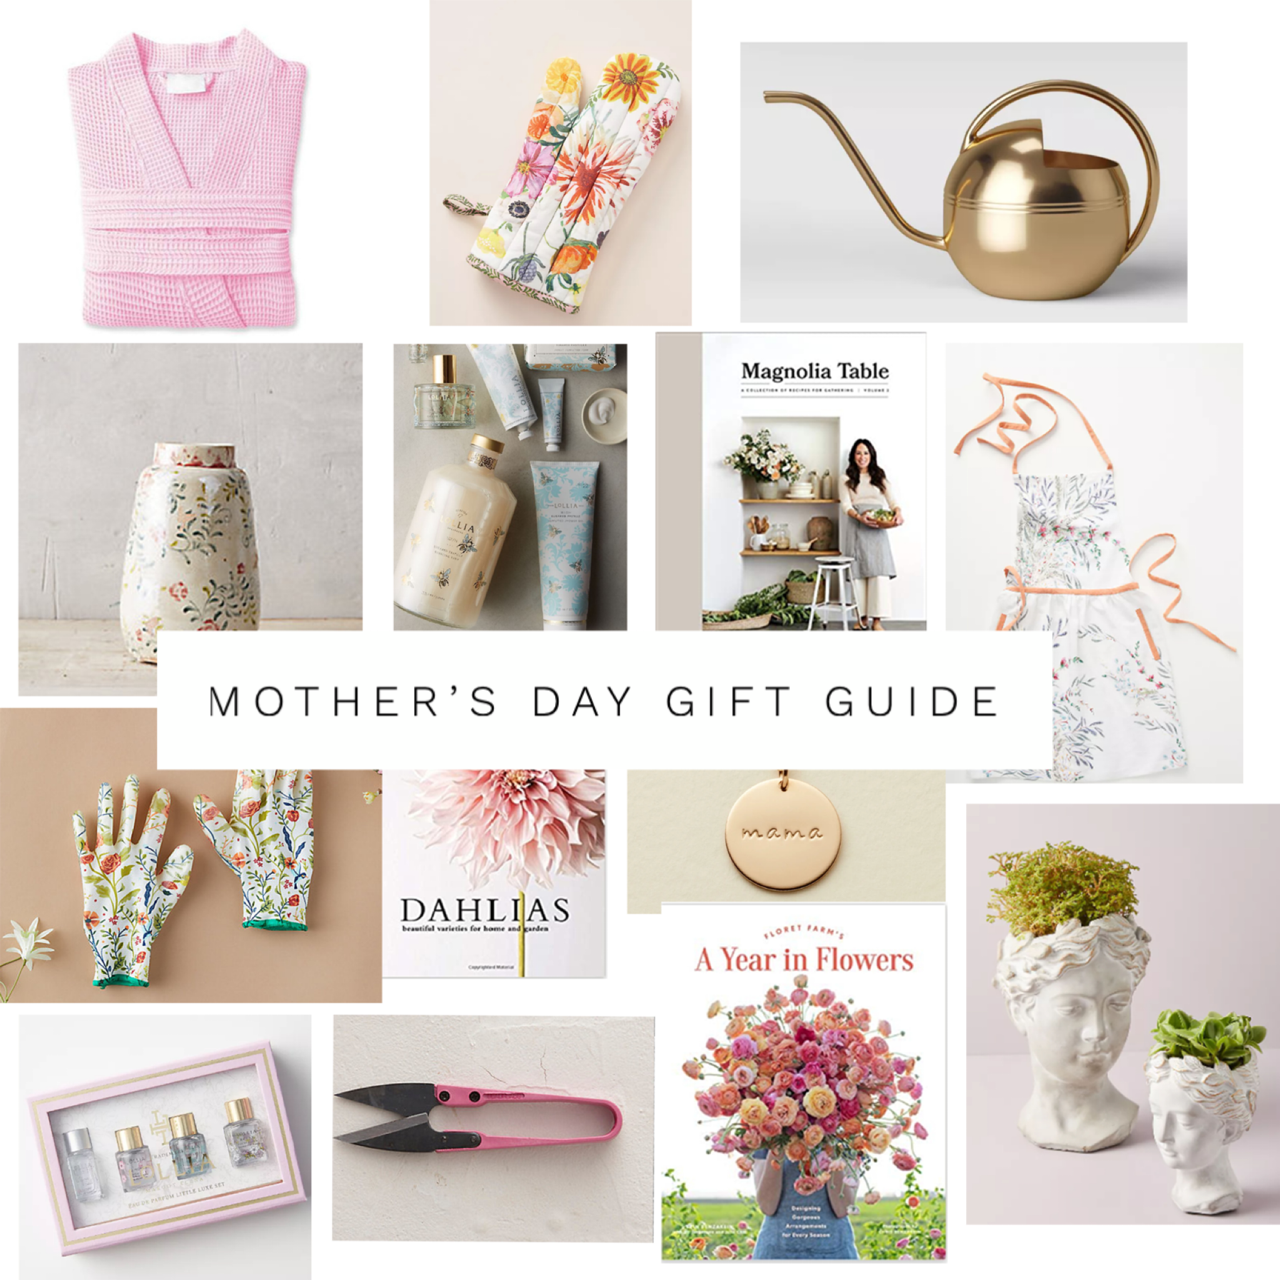 Mothers Day Gift Guide under $50